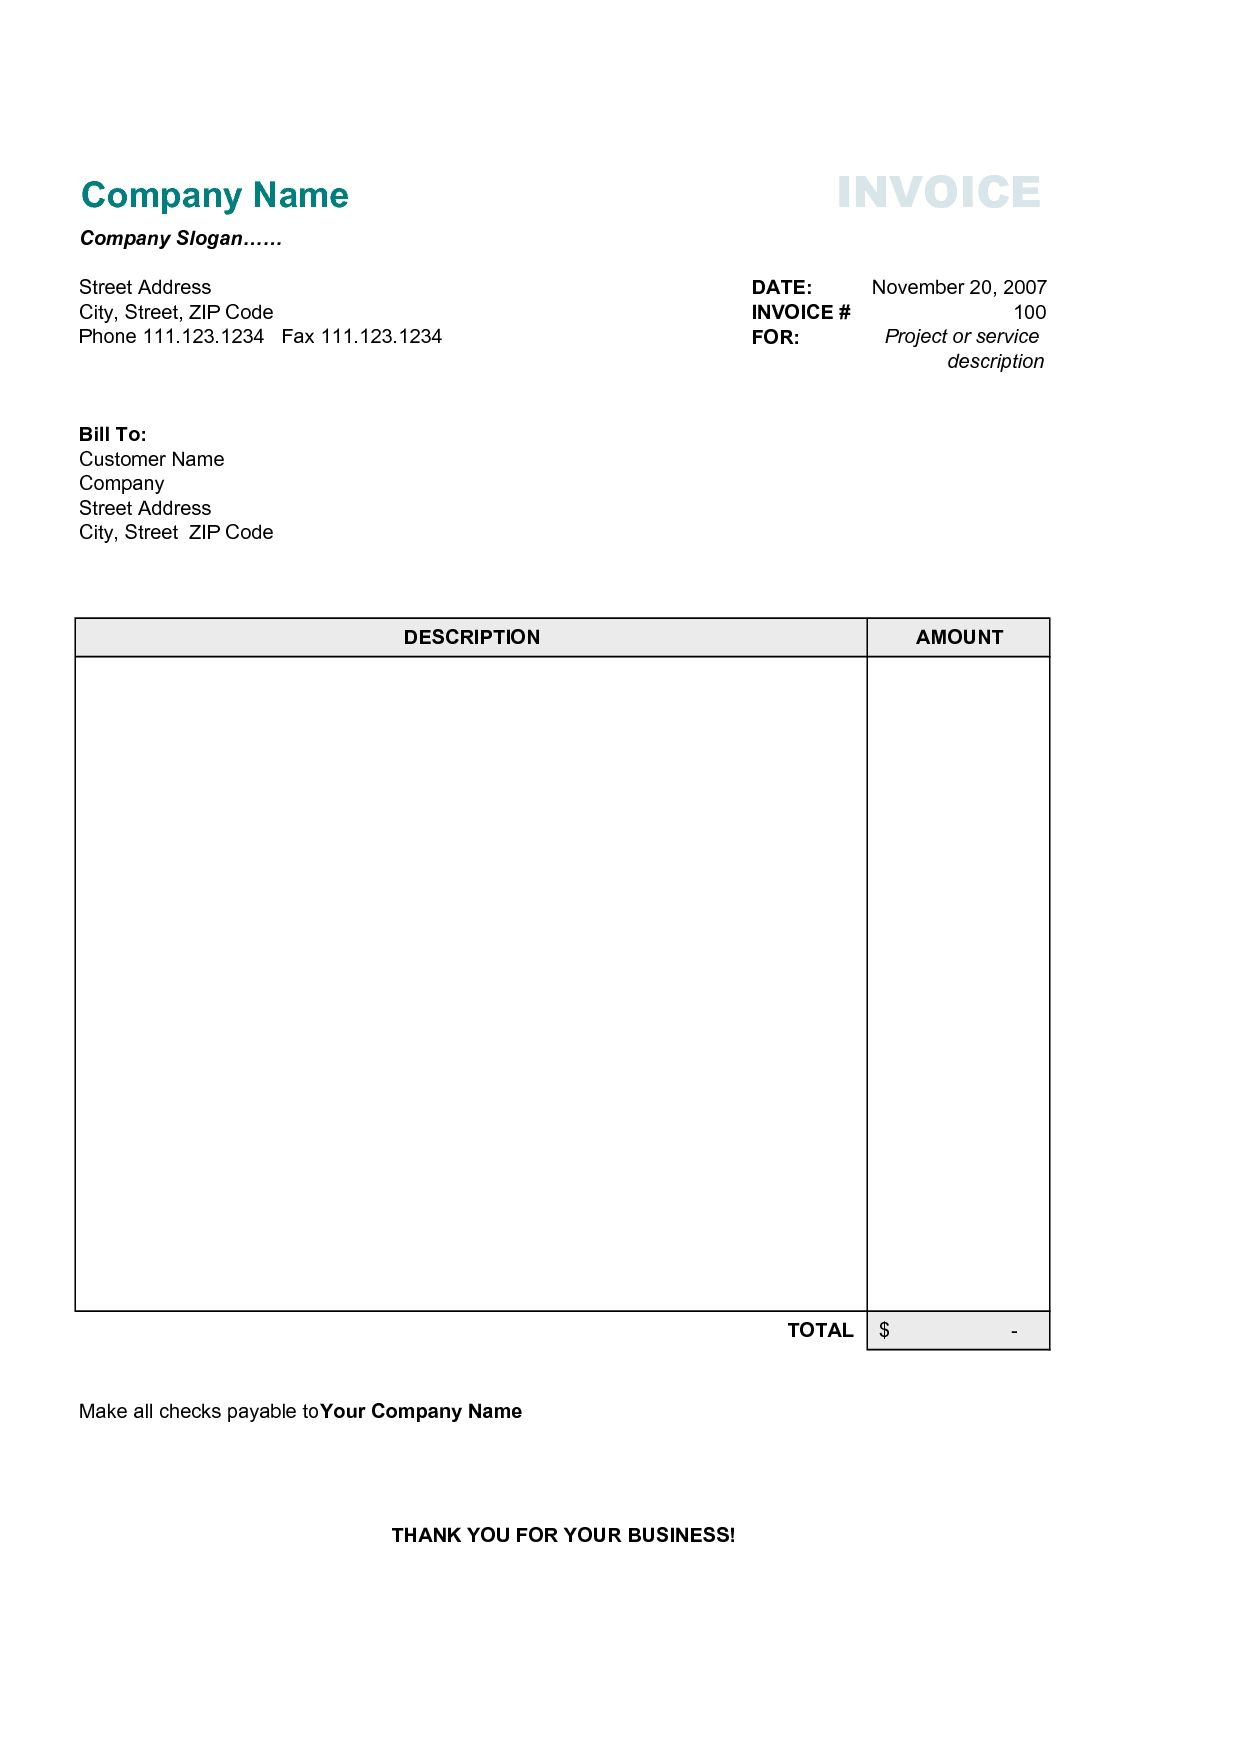 Sample Of Simple Invoice Insssrenterprisesco - Simple invoice template pdf